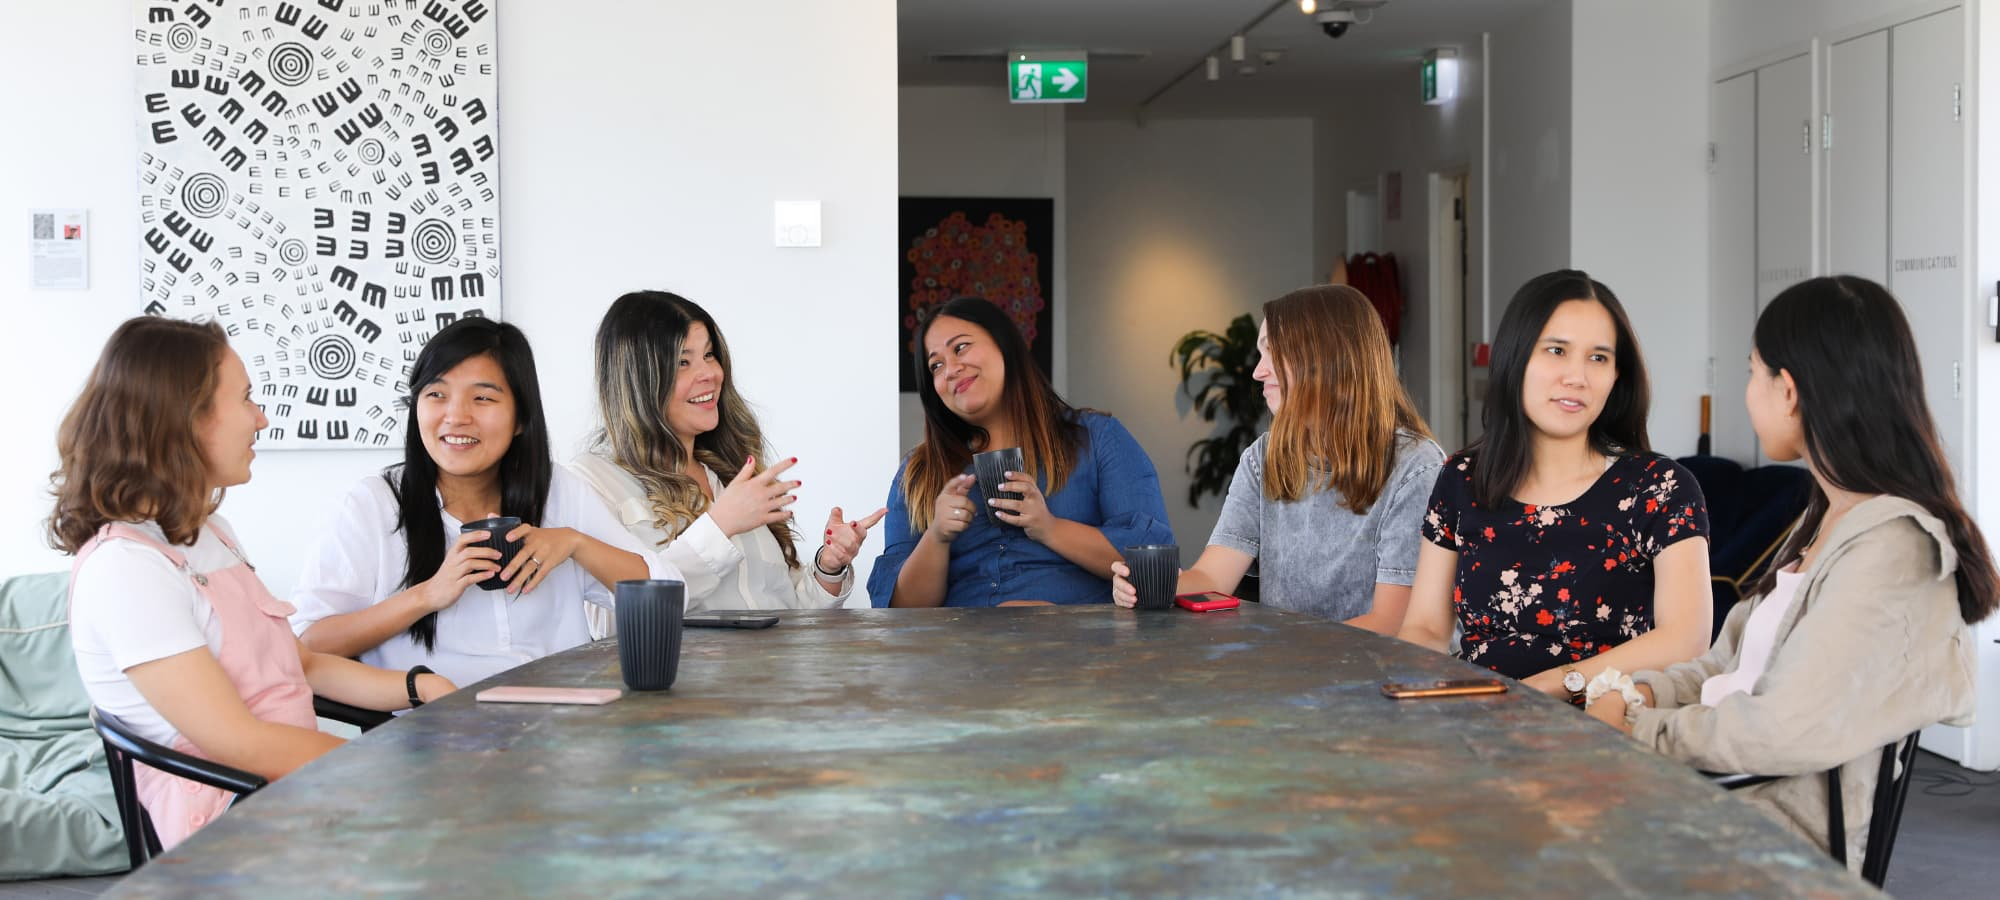 a meeting of women business owners